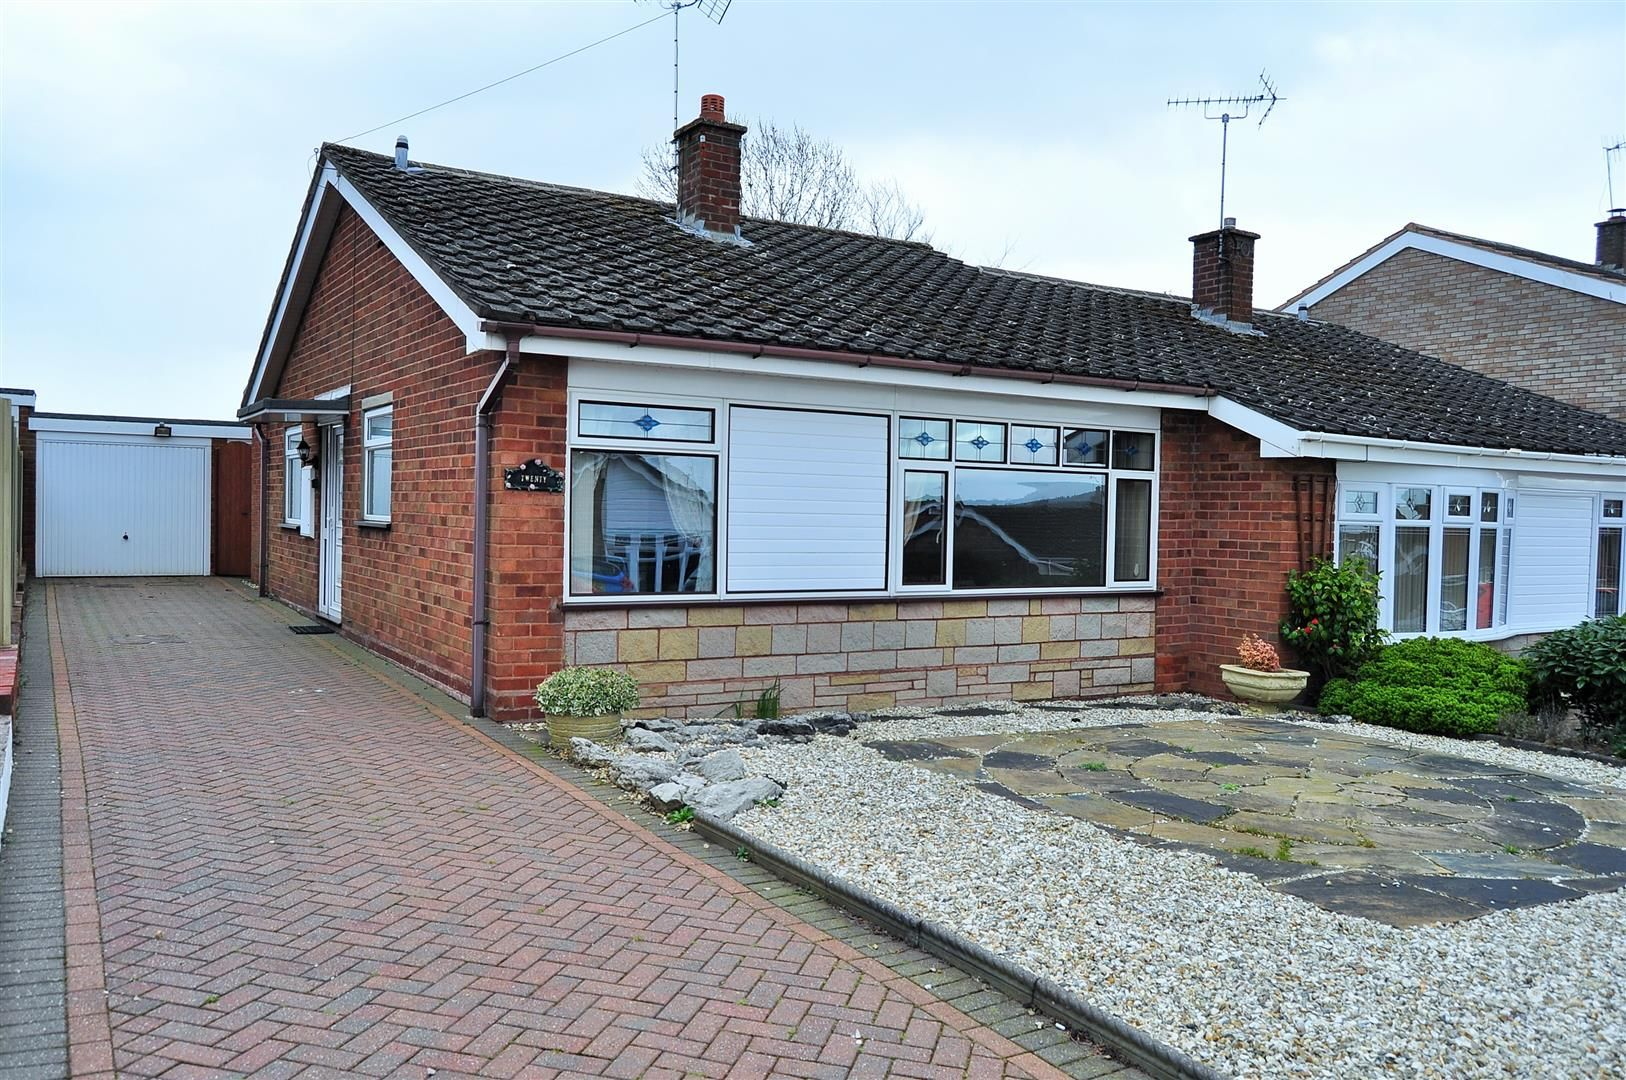 2 bed semi-detached-bungalow for sale, B63